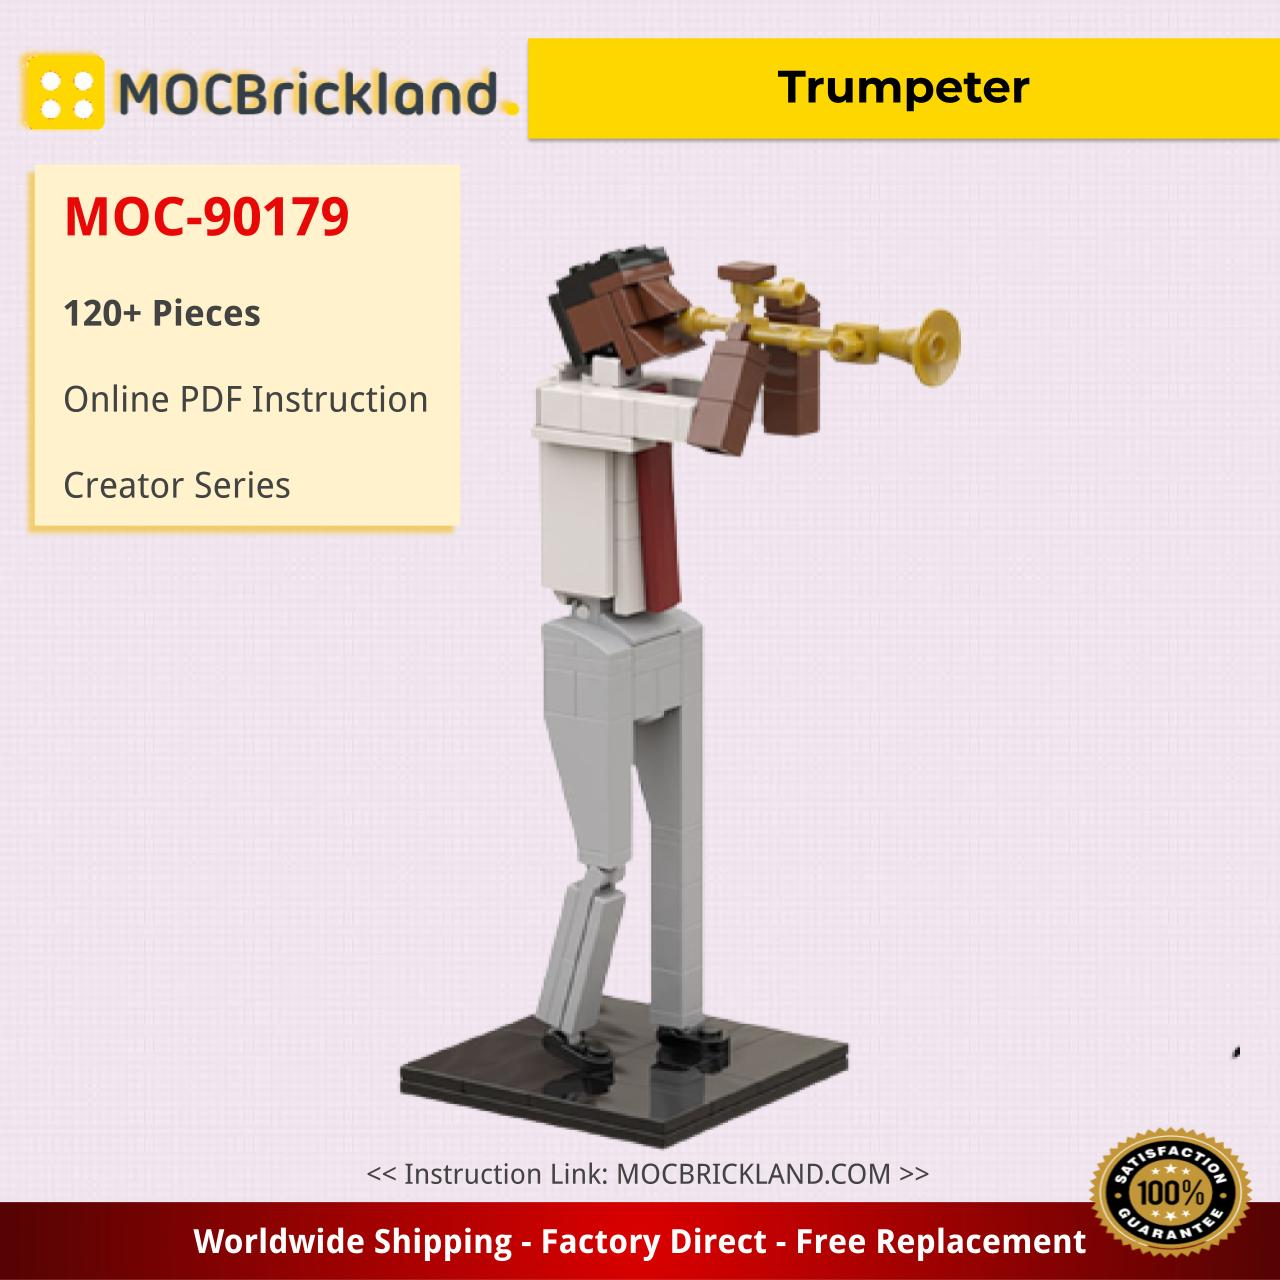 Trumpeter Creator MOC-90179 WITH 120 PIECES